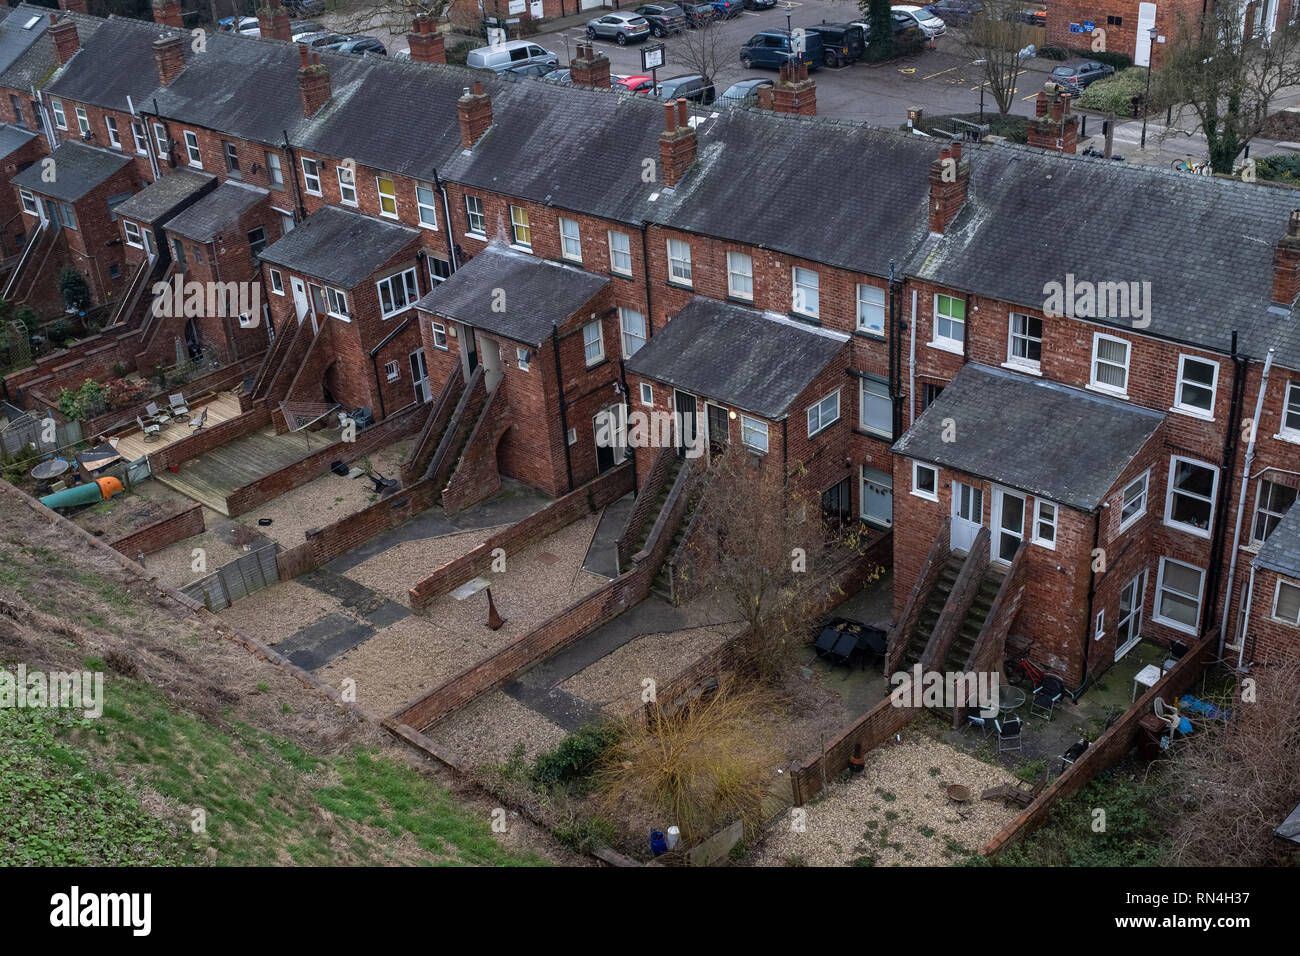 A high viewpoint of a row of terraced houses in the UK seen from the back. - Stock Image